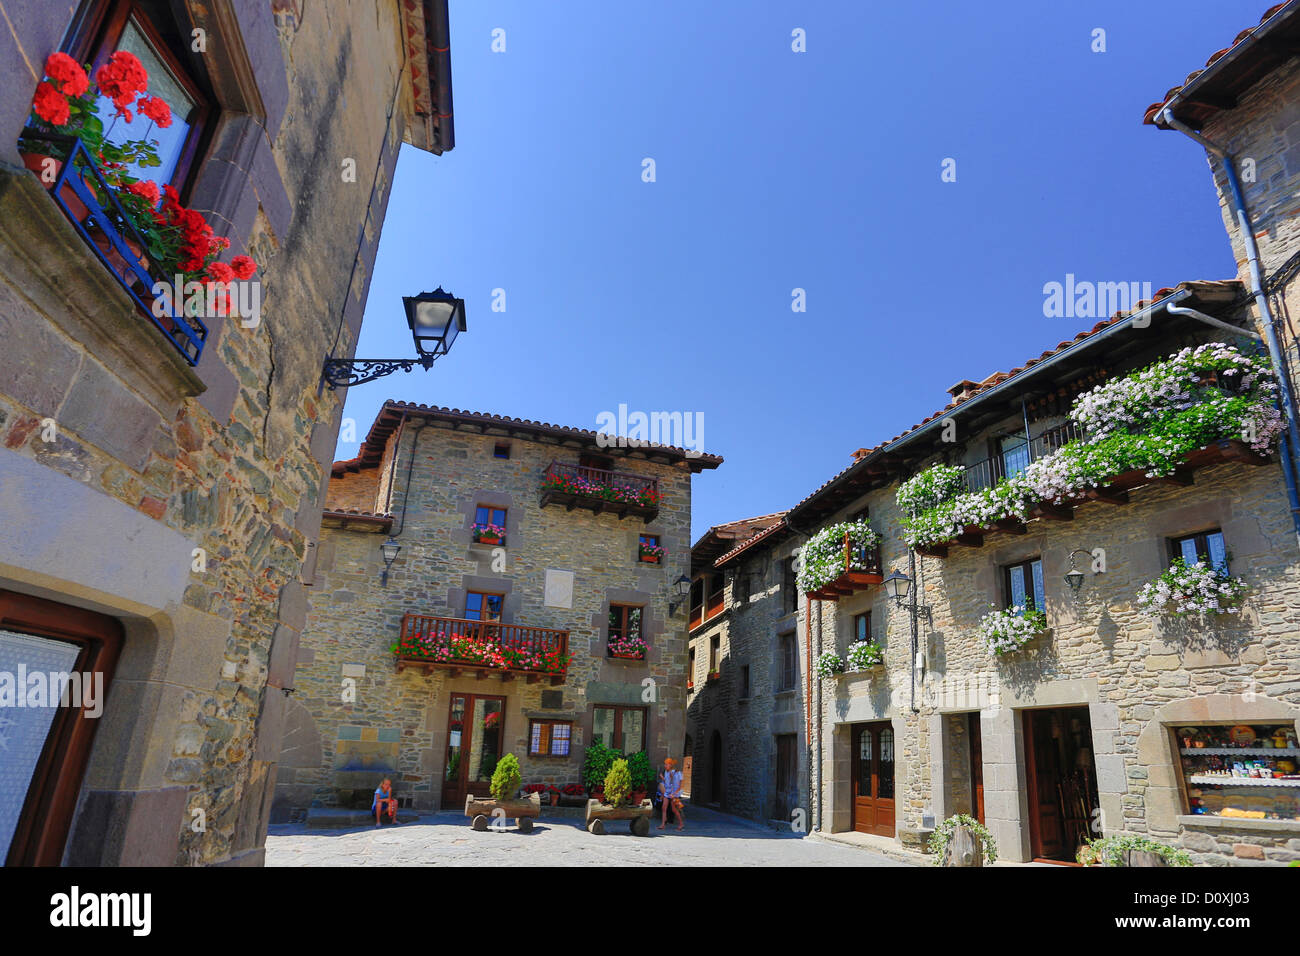 Spain, Europe, Catalonia, Barcelona Province, Rupit, town, architecture, flowers, medieval, natural, picturesque, - Stock Image